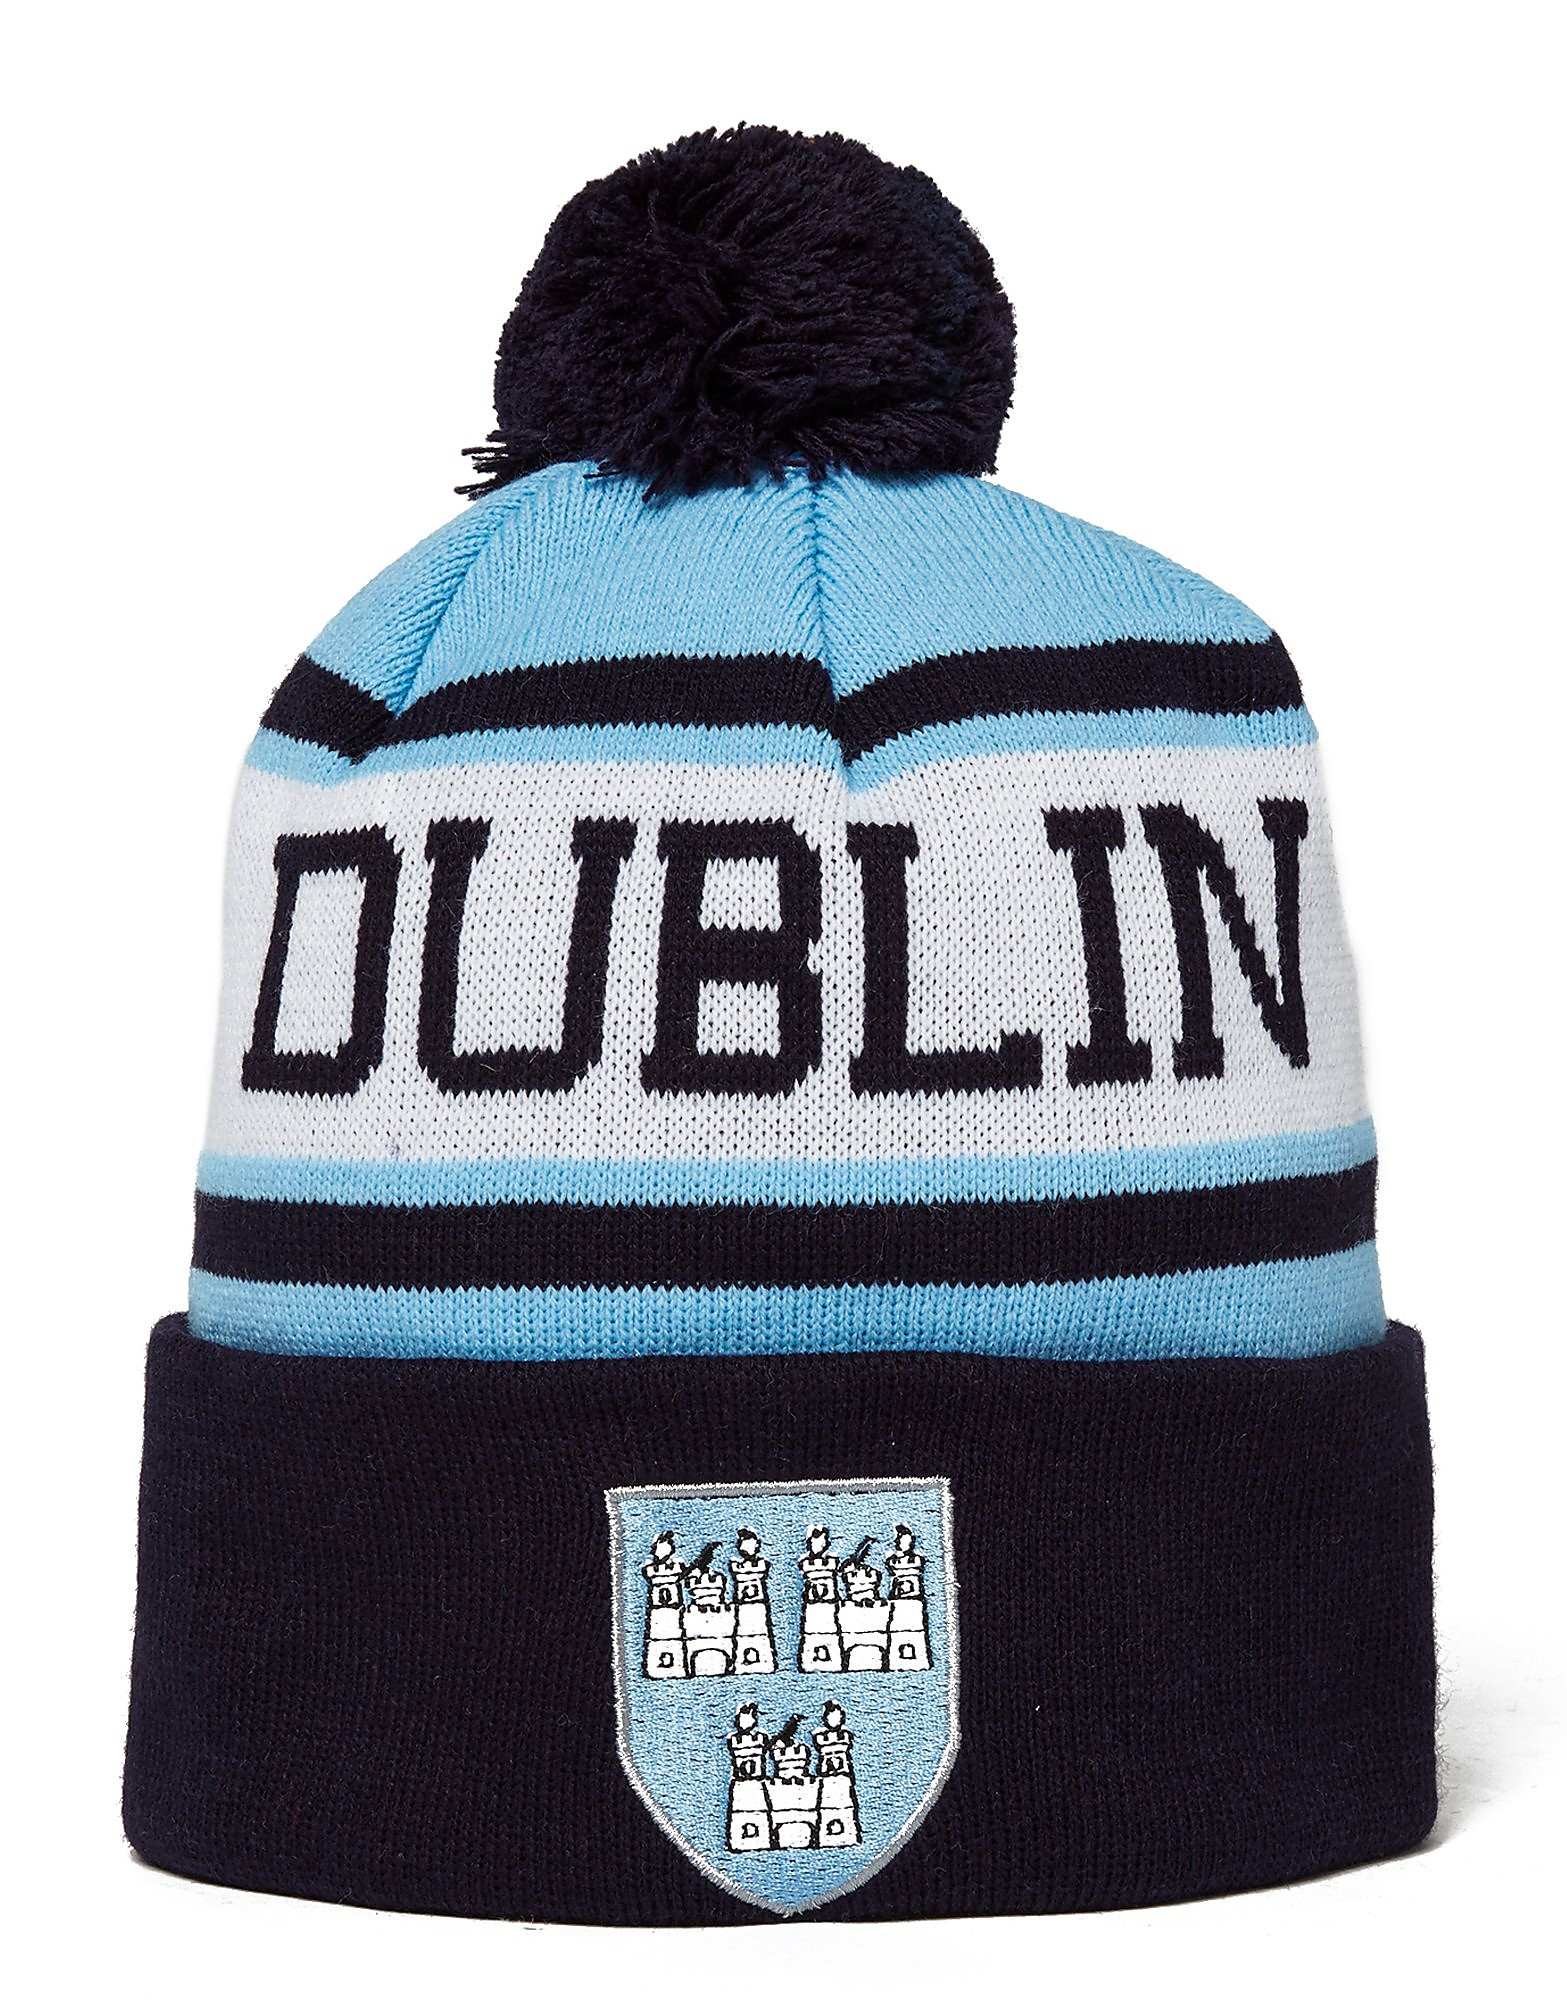 Official Team Dublin Beanie Hat